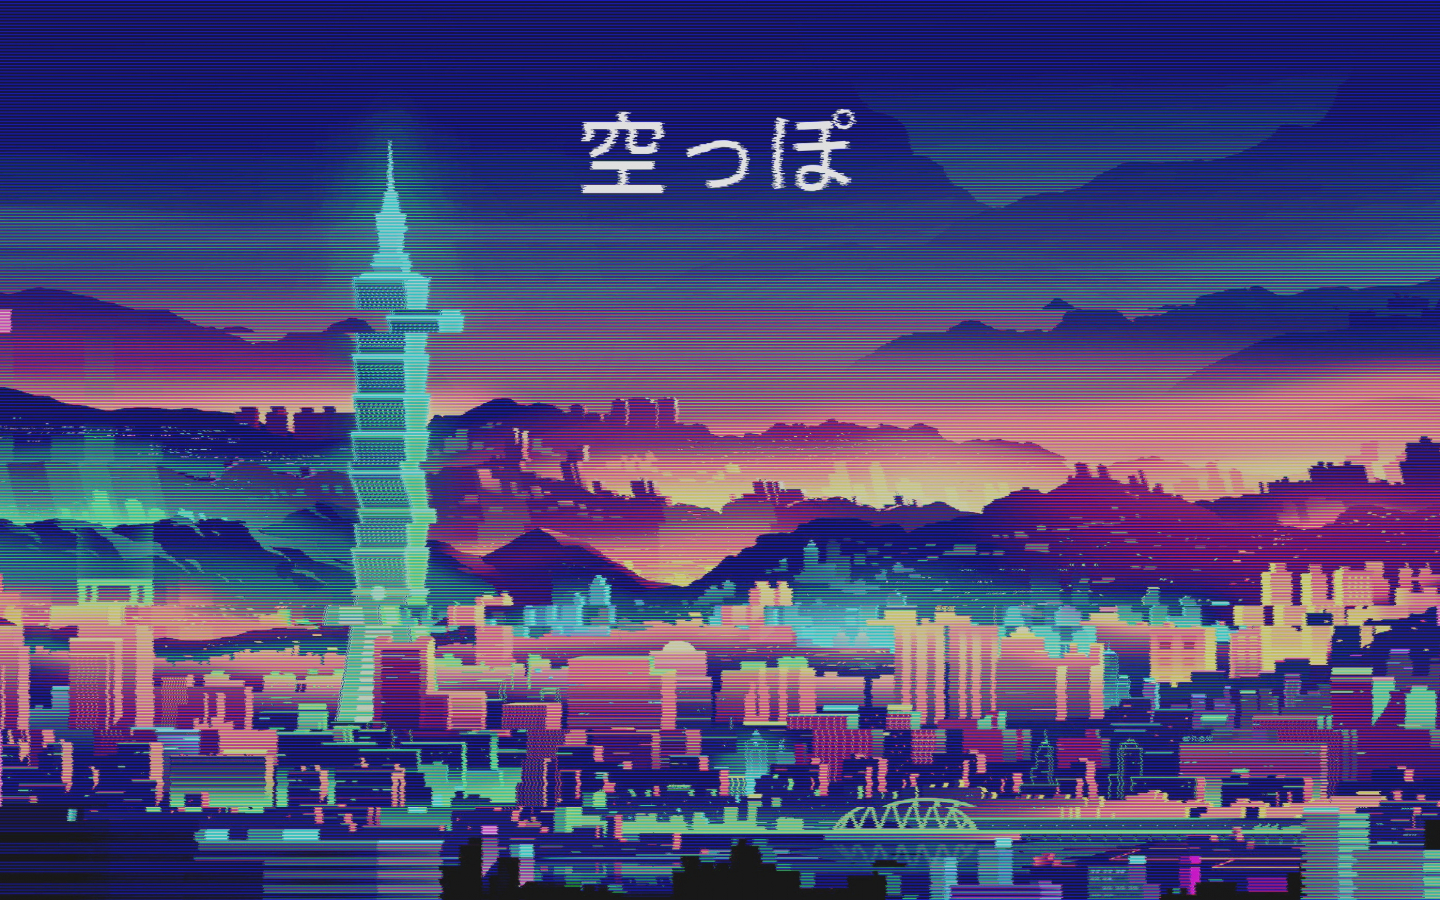 Free Download Vaporwave Hd Anime City Wallpaper Cool Wallpapers Hd Aesthetic 2787x1742 For Your Desktop Mobile Tablet Explore 44 Aesthetic Vaporwave Wallpaper Aesthetic Vaporwave Wallpaper Vaporwave Wallpaper Aesthetic Wallpaper